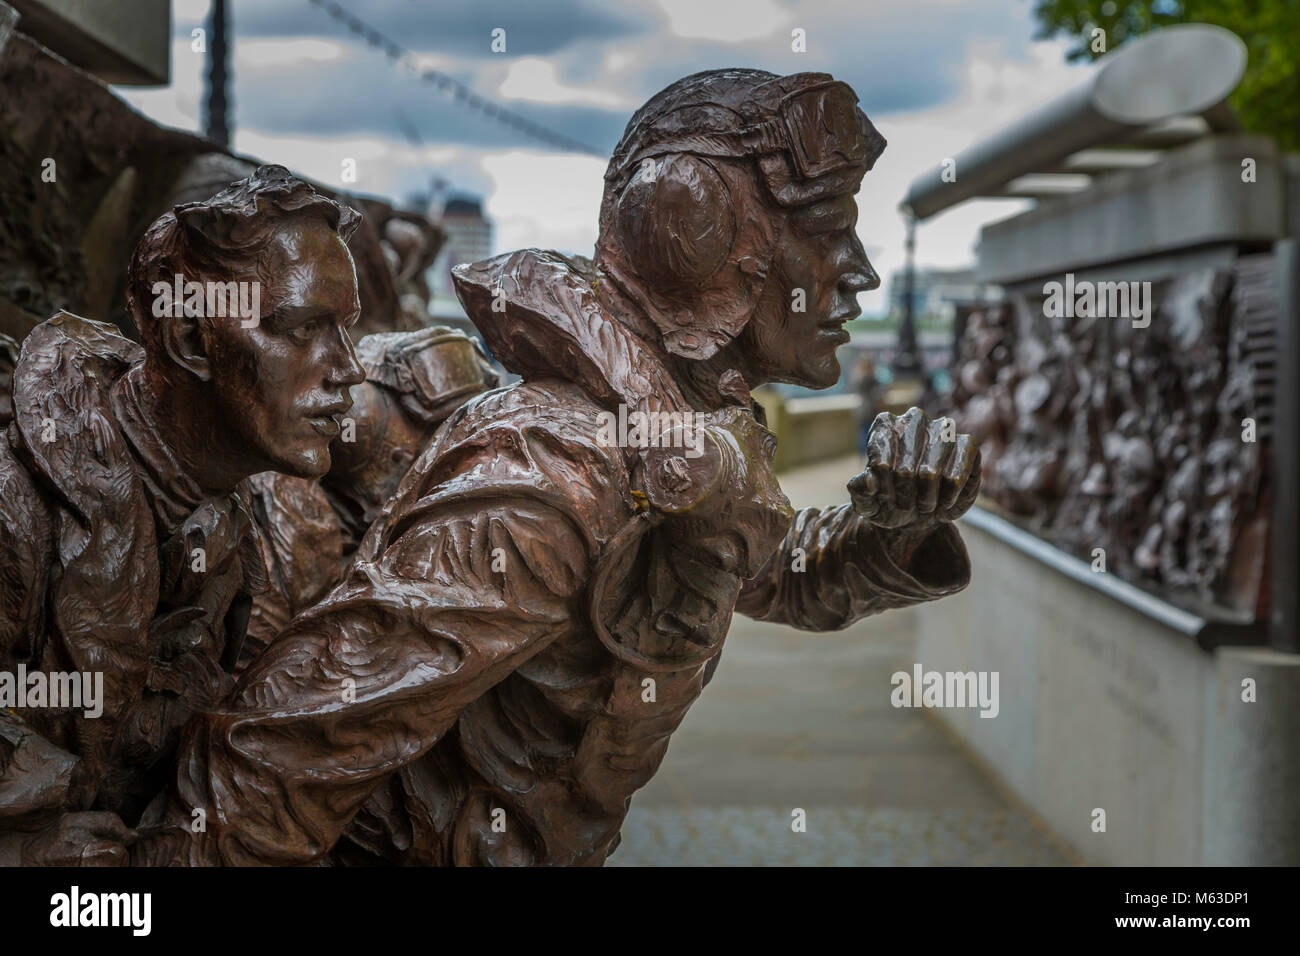 Part of the Battle of Britain memorial in London designed by Paul Day. - Stock Image